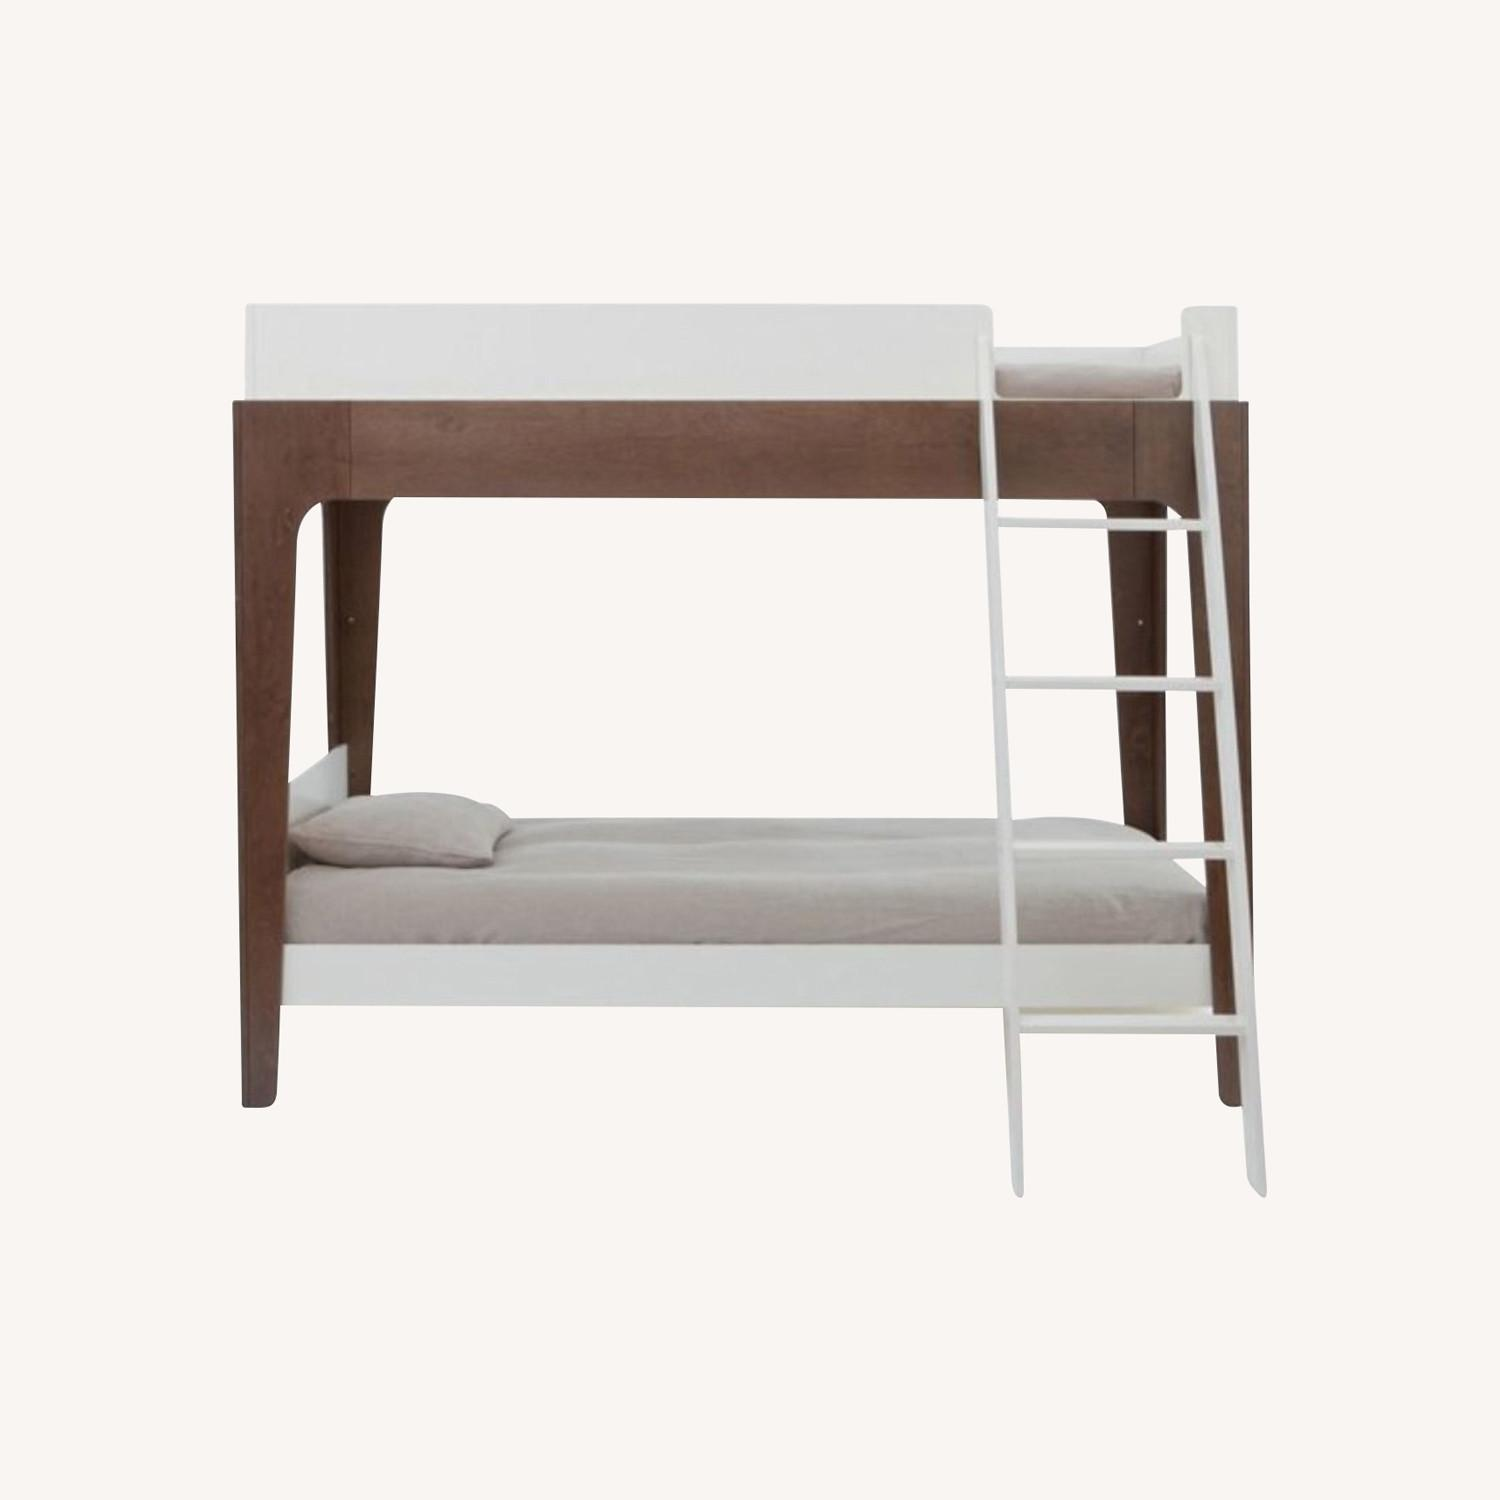 Oeuf Perch Bunk Bed - image-0